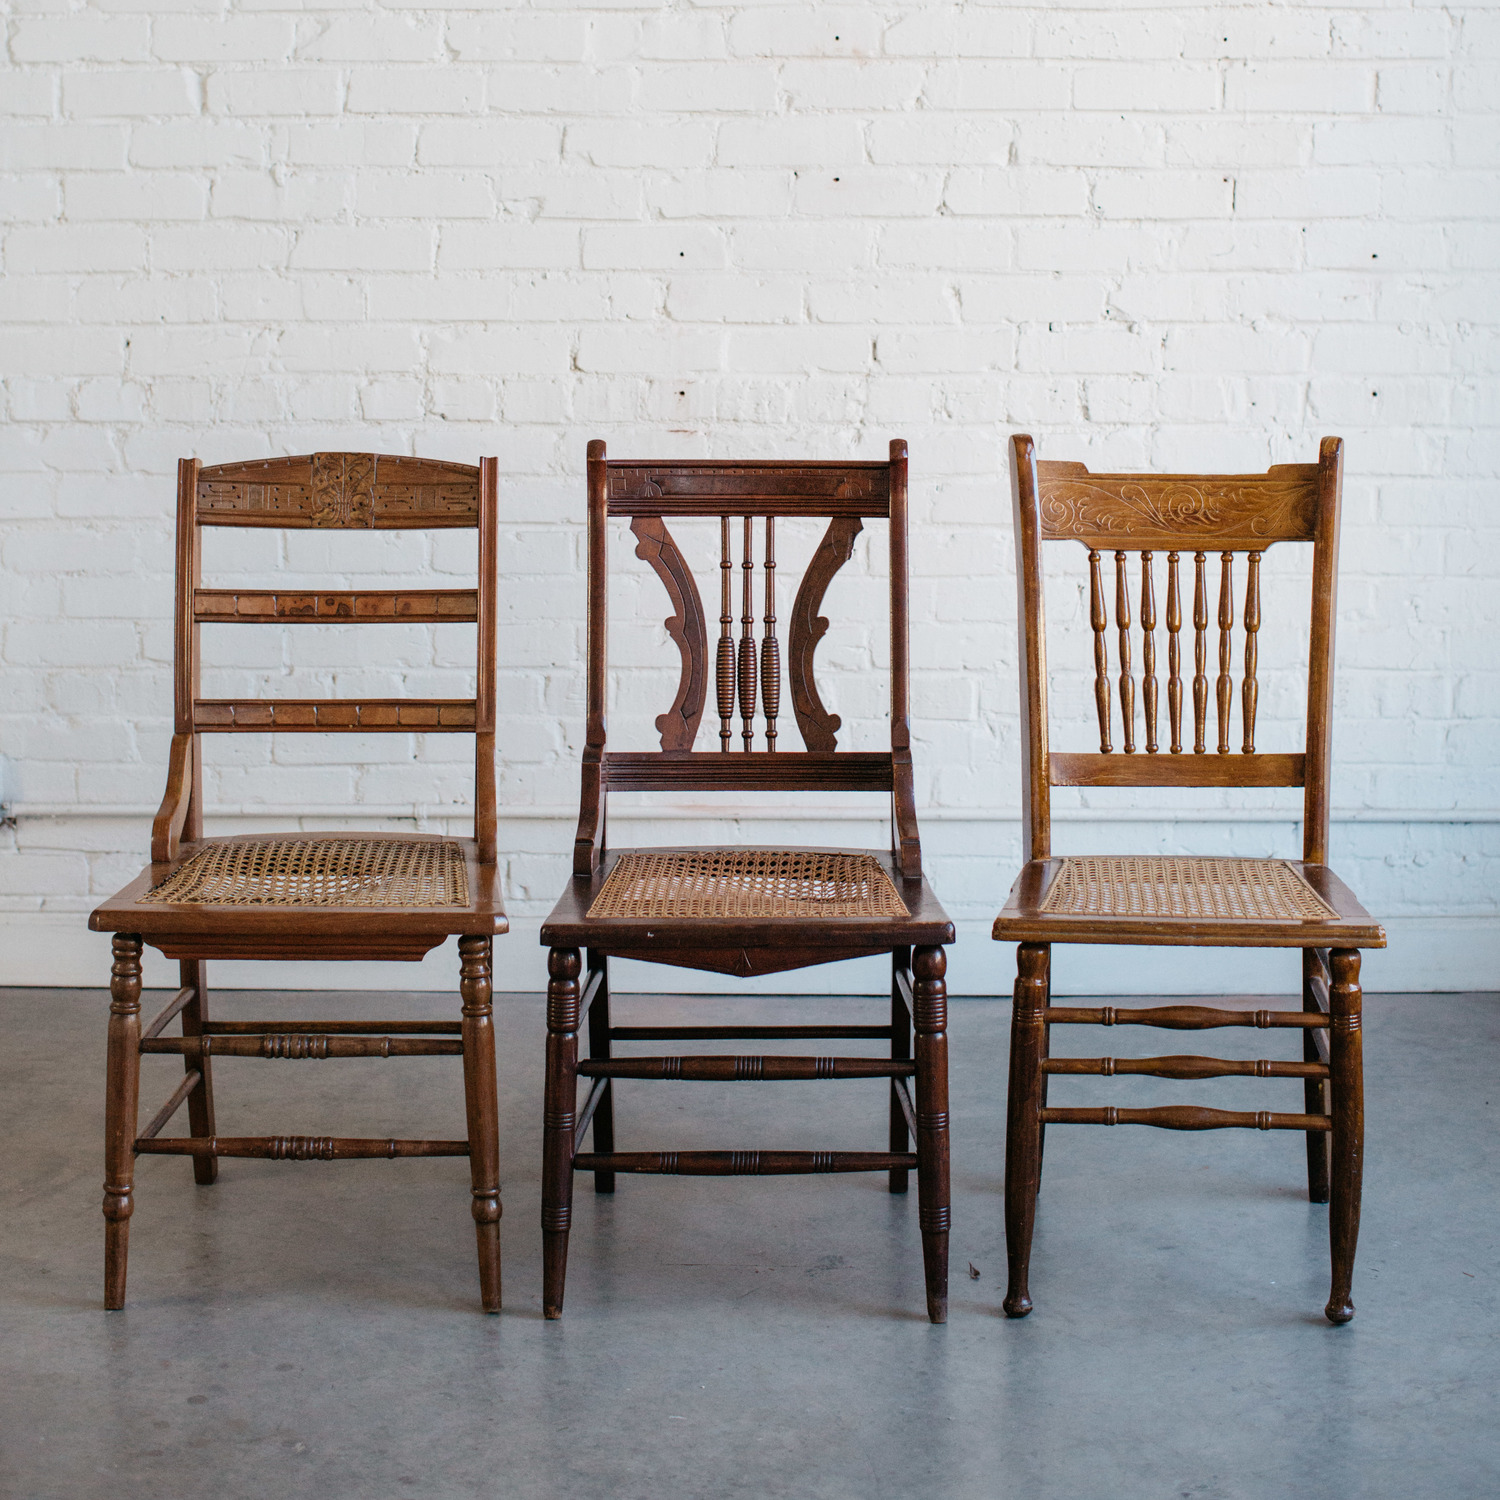 Cane Seat Wood Chairs A Darling Day